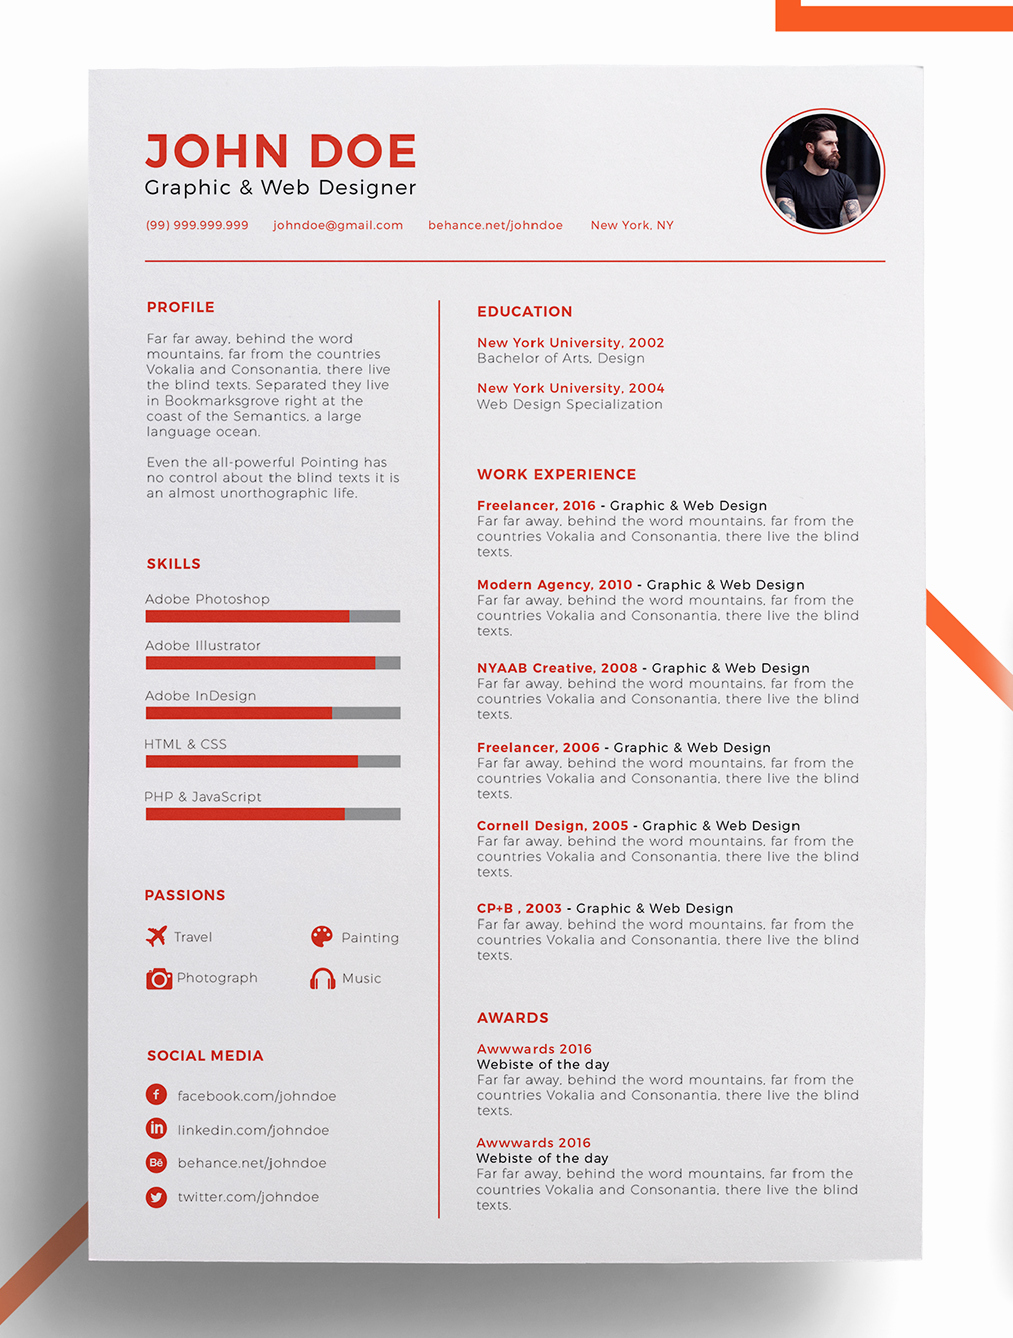 Free Word Resume Templates 2018 Unique Improve Your Resume Template 2019 to Get Noticed